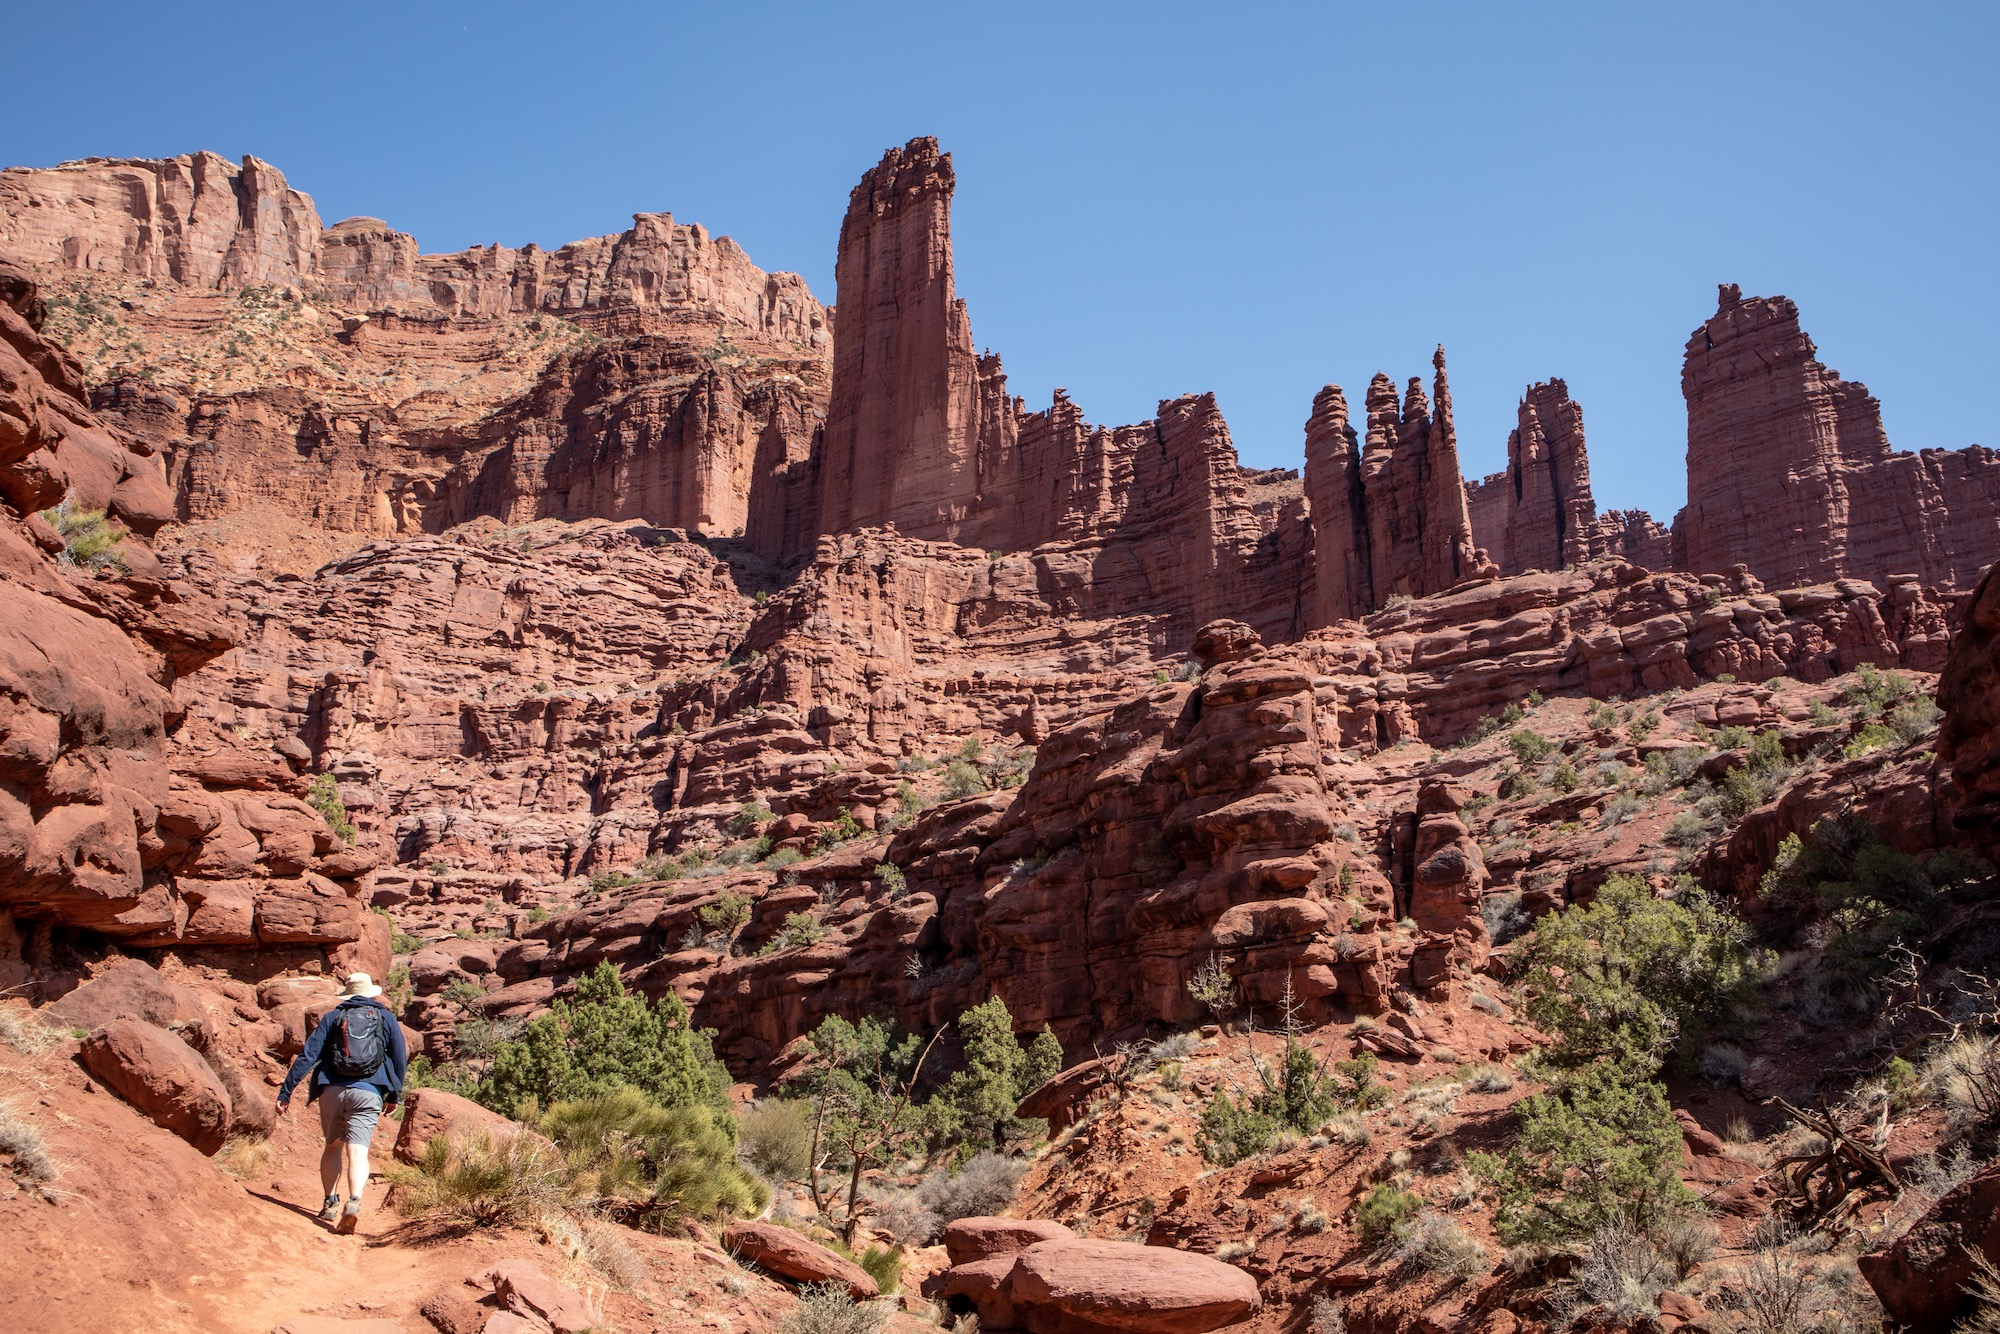 The beginning of the hike at Fisher Towers, a 5-mile out-and-back.